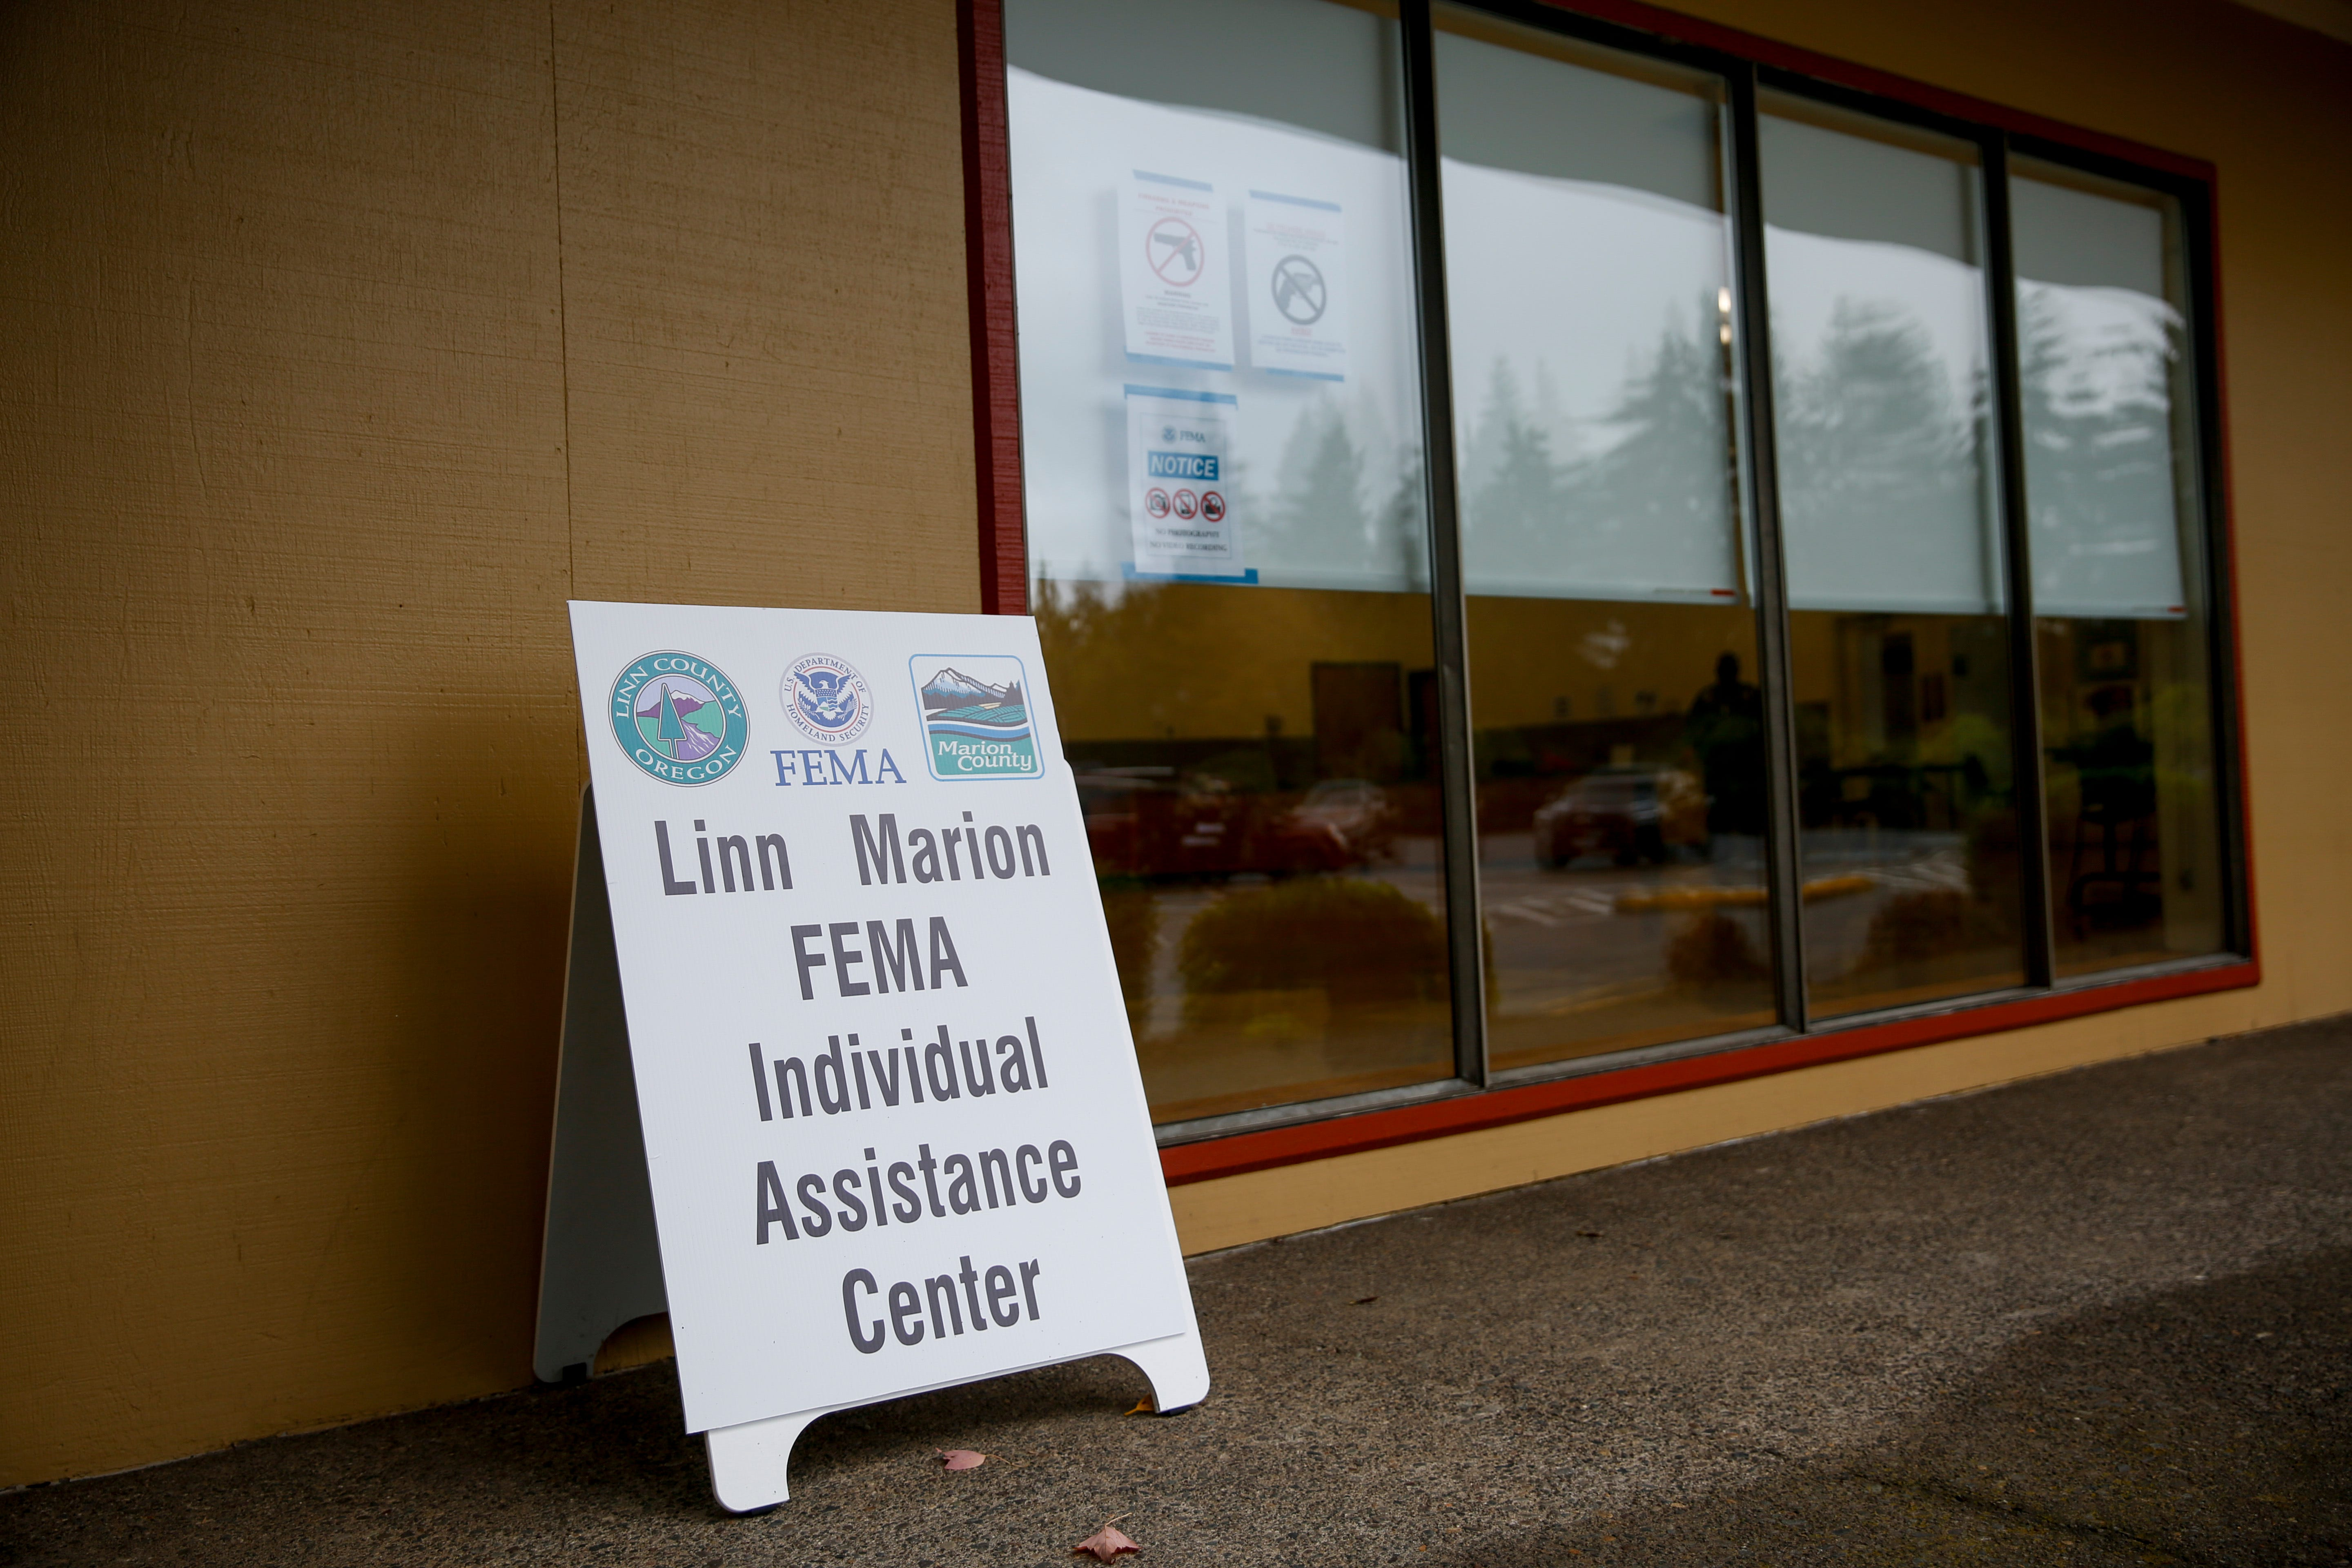 Resources are available through FEMA for Santiam Canyon residents recovering from the wildfires on Monday, Oct. 12, 2020 at the Community Center in Stayton, Oregon.